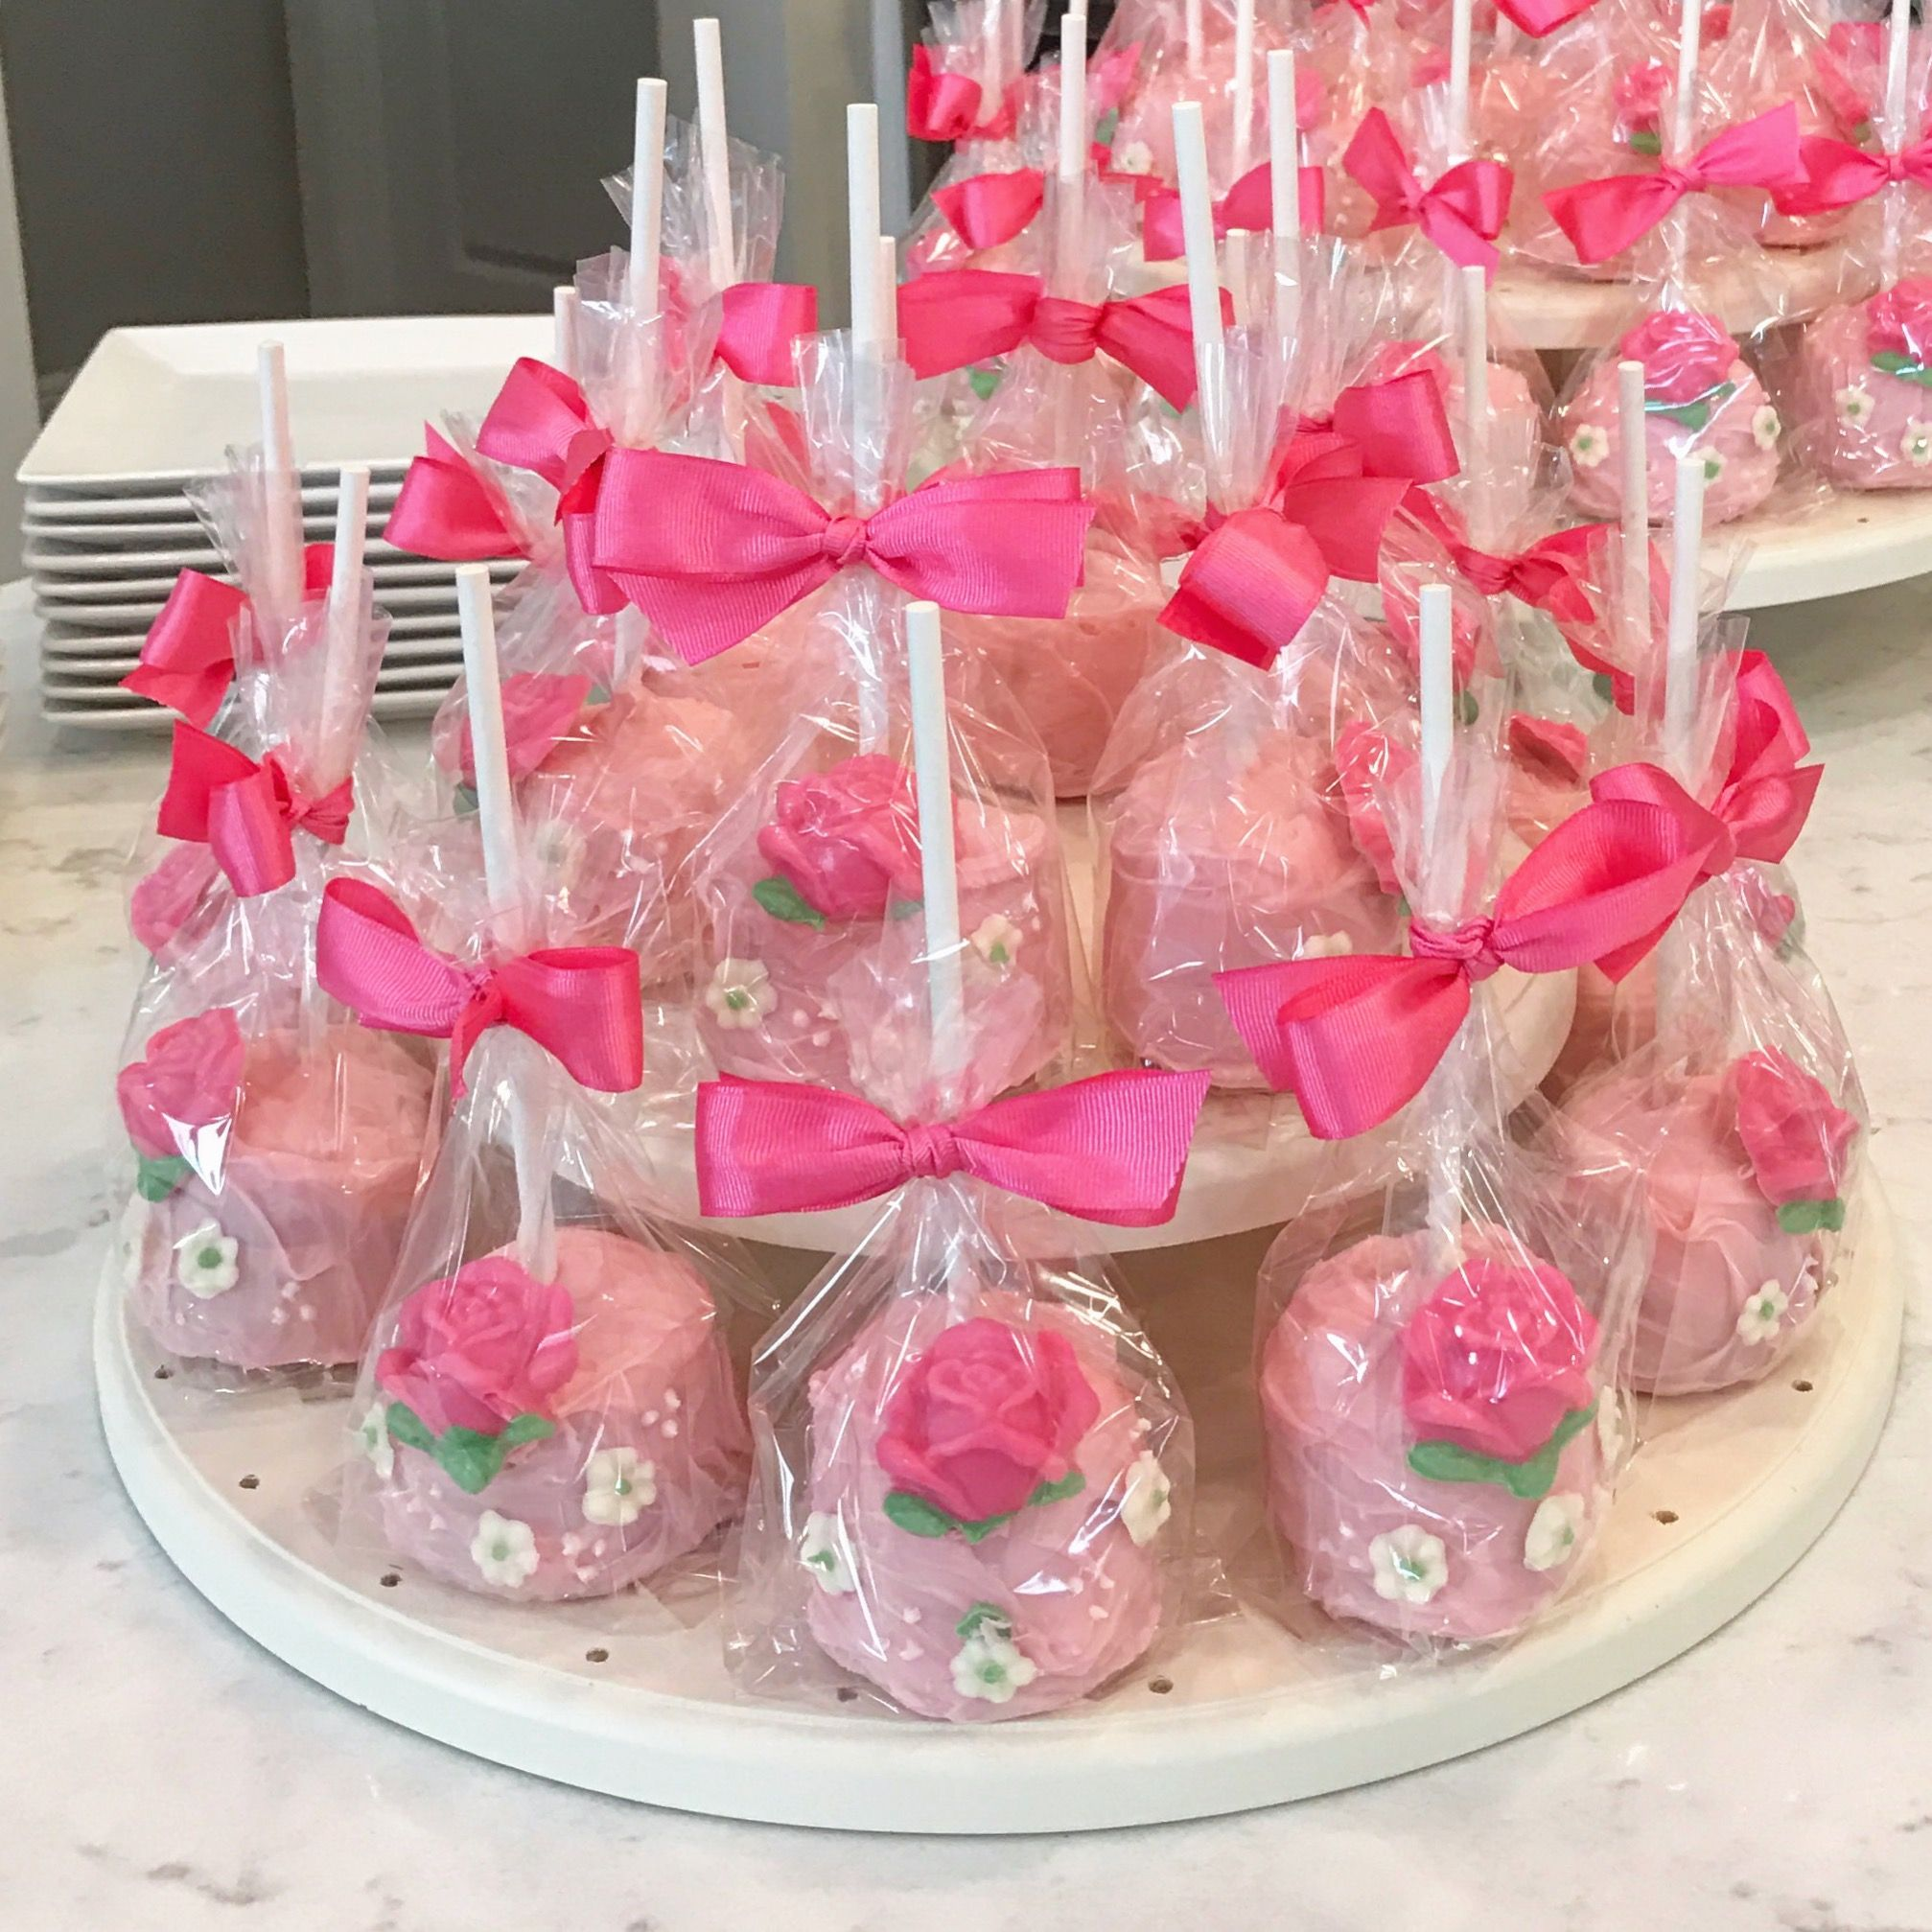 Pin by Marcie Sosner on Marce-mallows | Pinterest | Chocolate